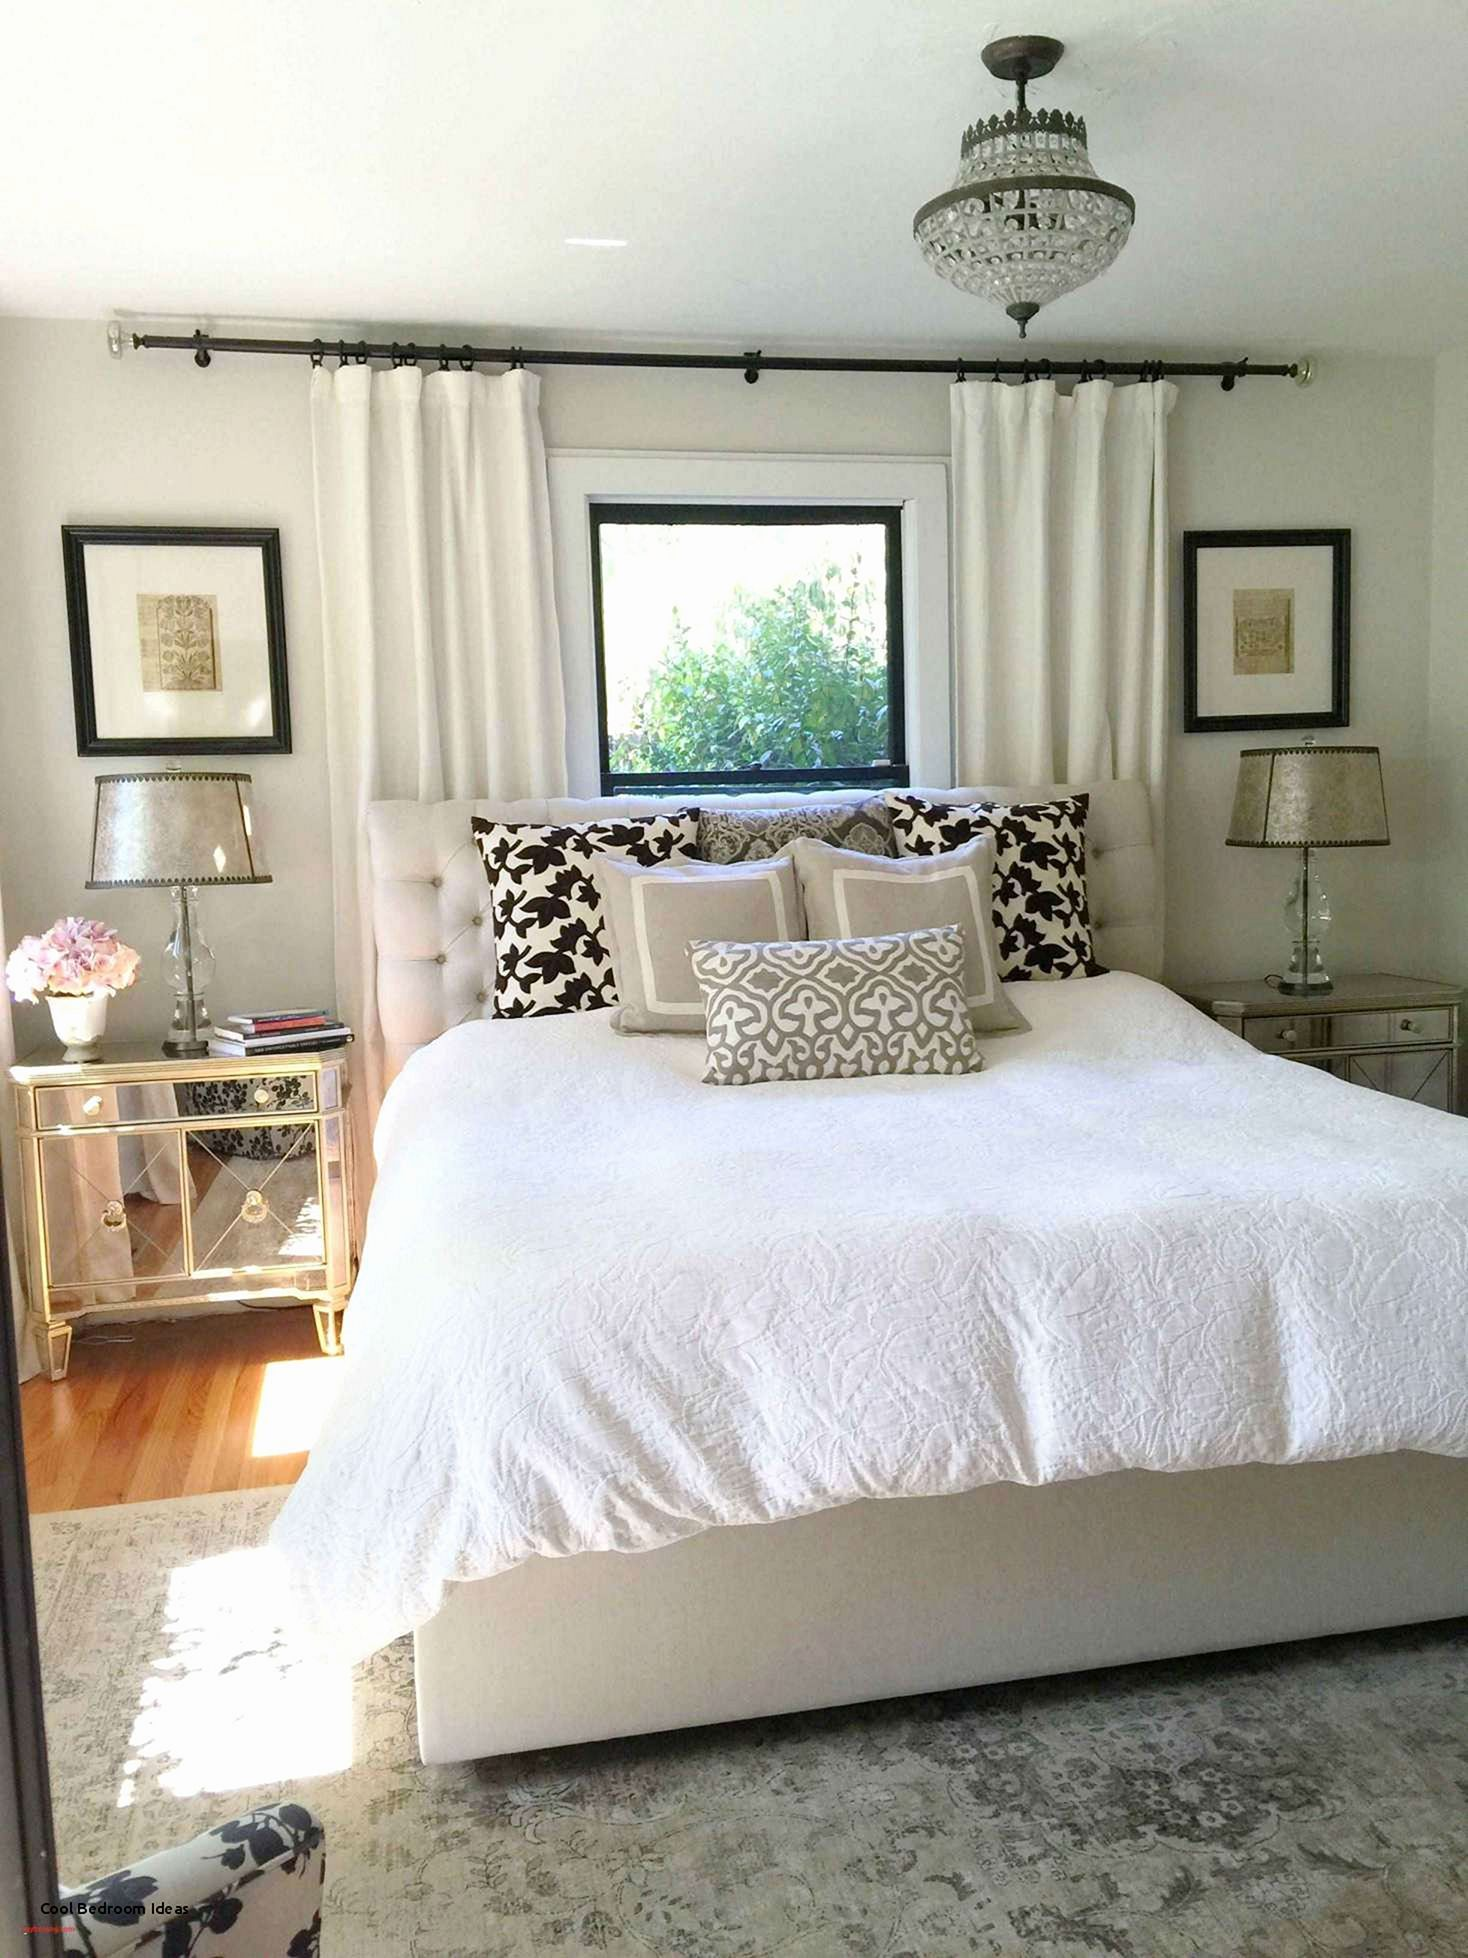 17 Traditional Bedroom Design Ideas For A More Comfortable Sleep Elegant Bedroom Design Small Bedroom Ideas For Couples Master Bedrooms Decor